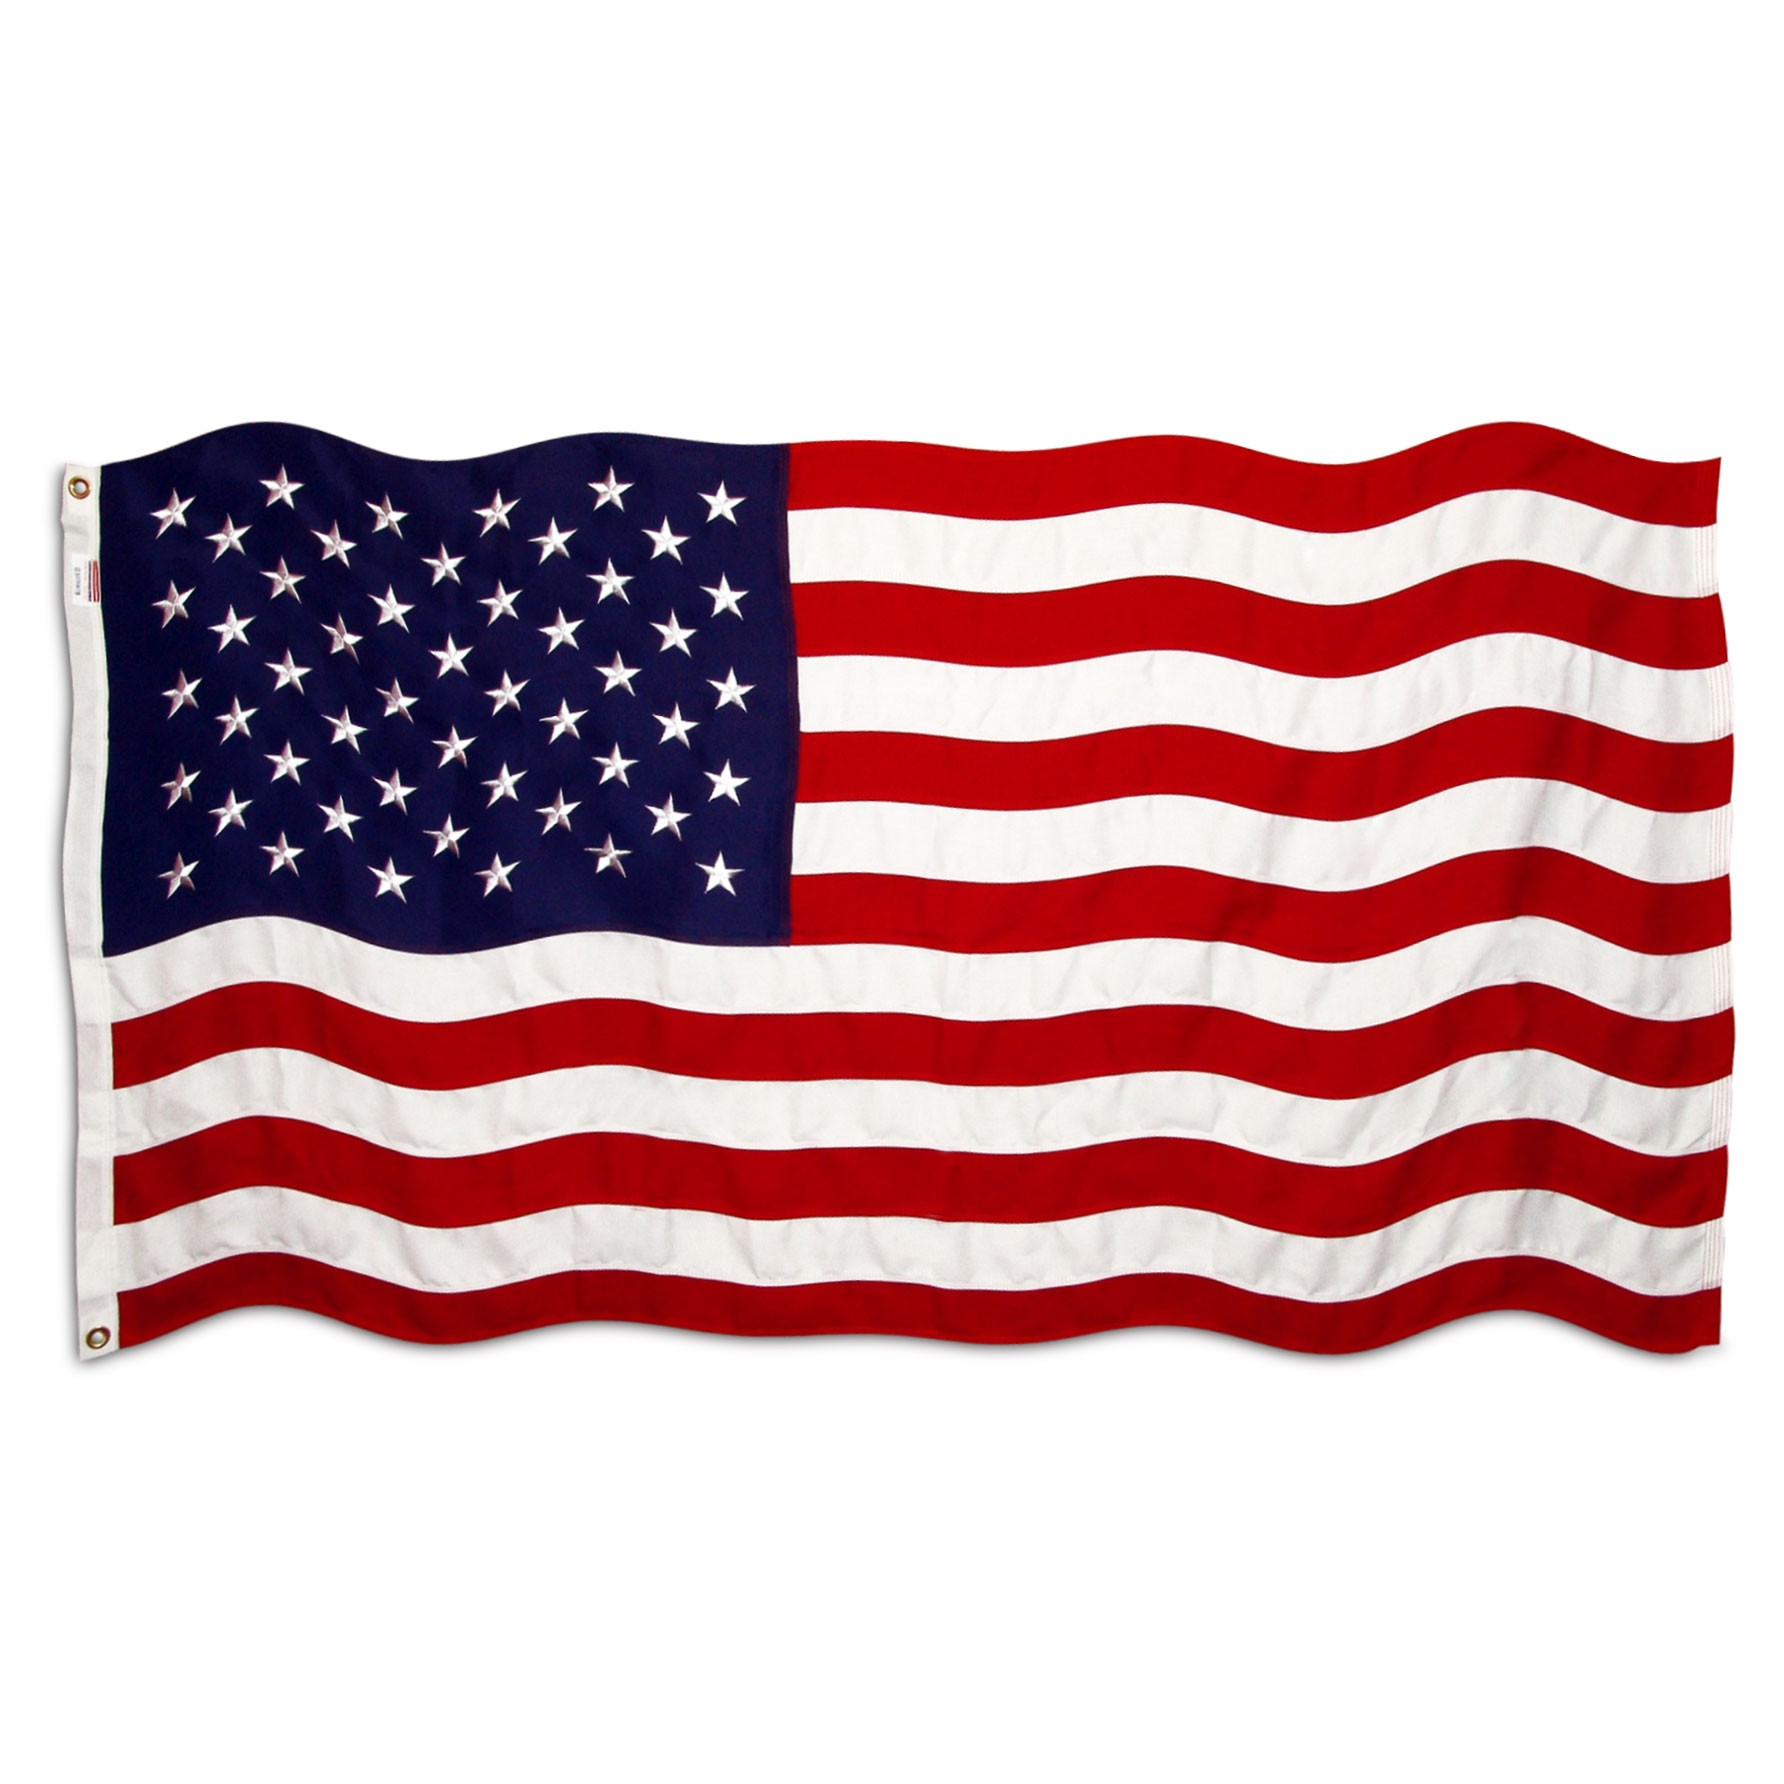 1784x1784 American Flag 3ft X 5ft Sewn Polyester